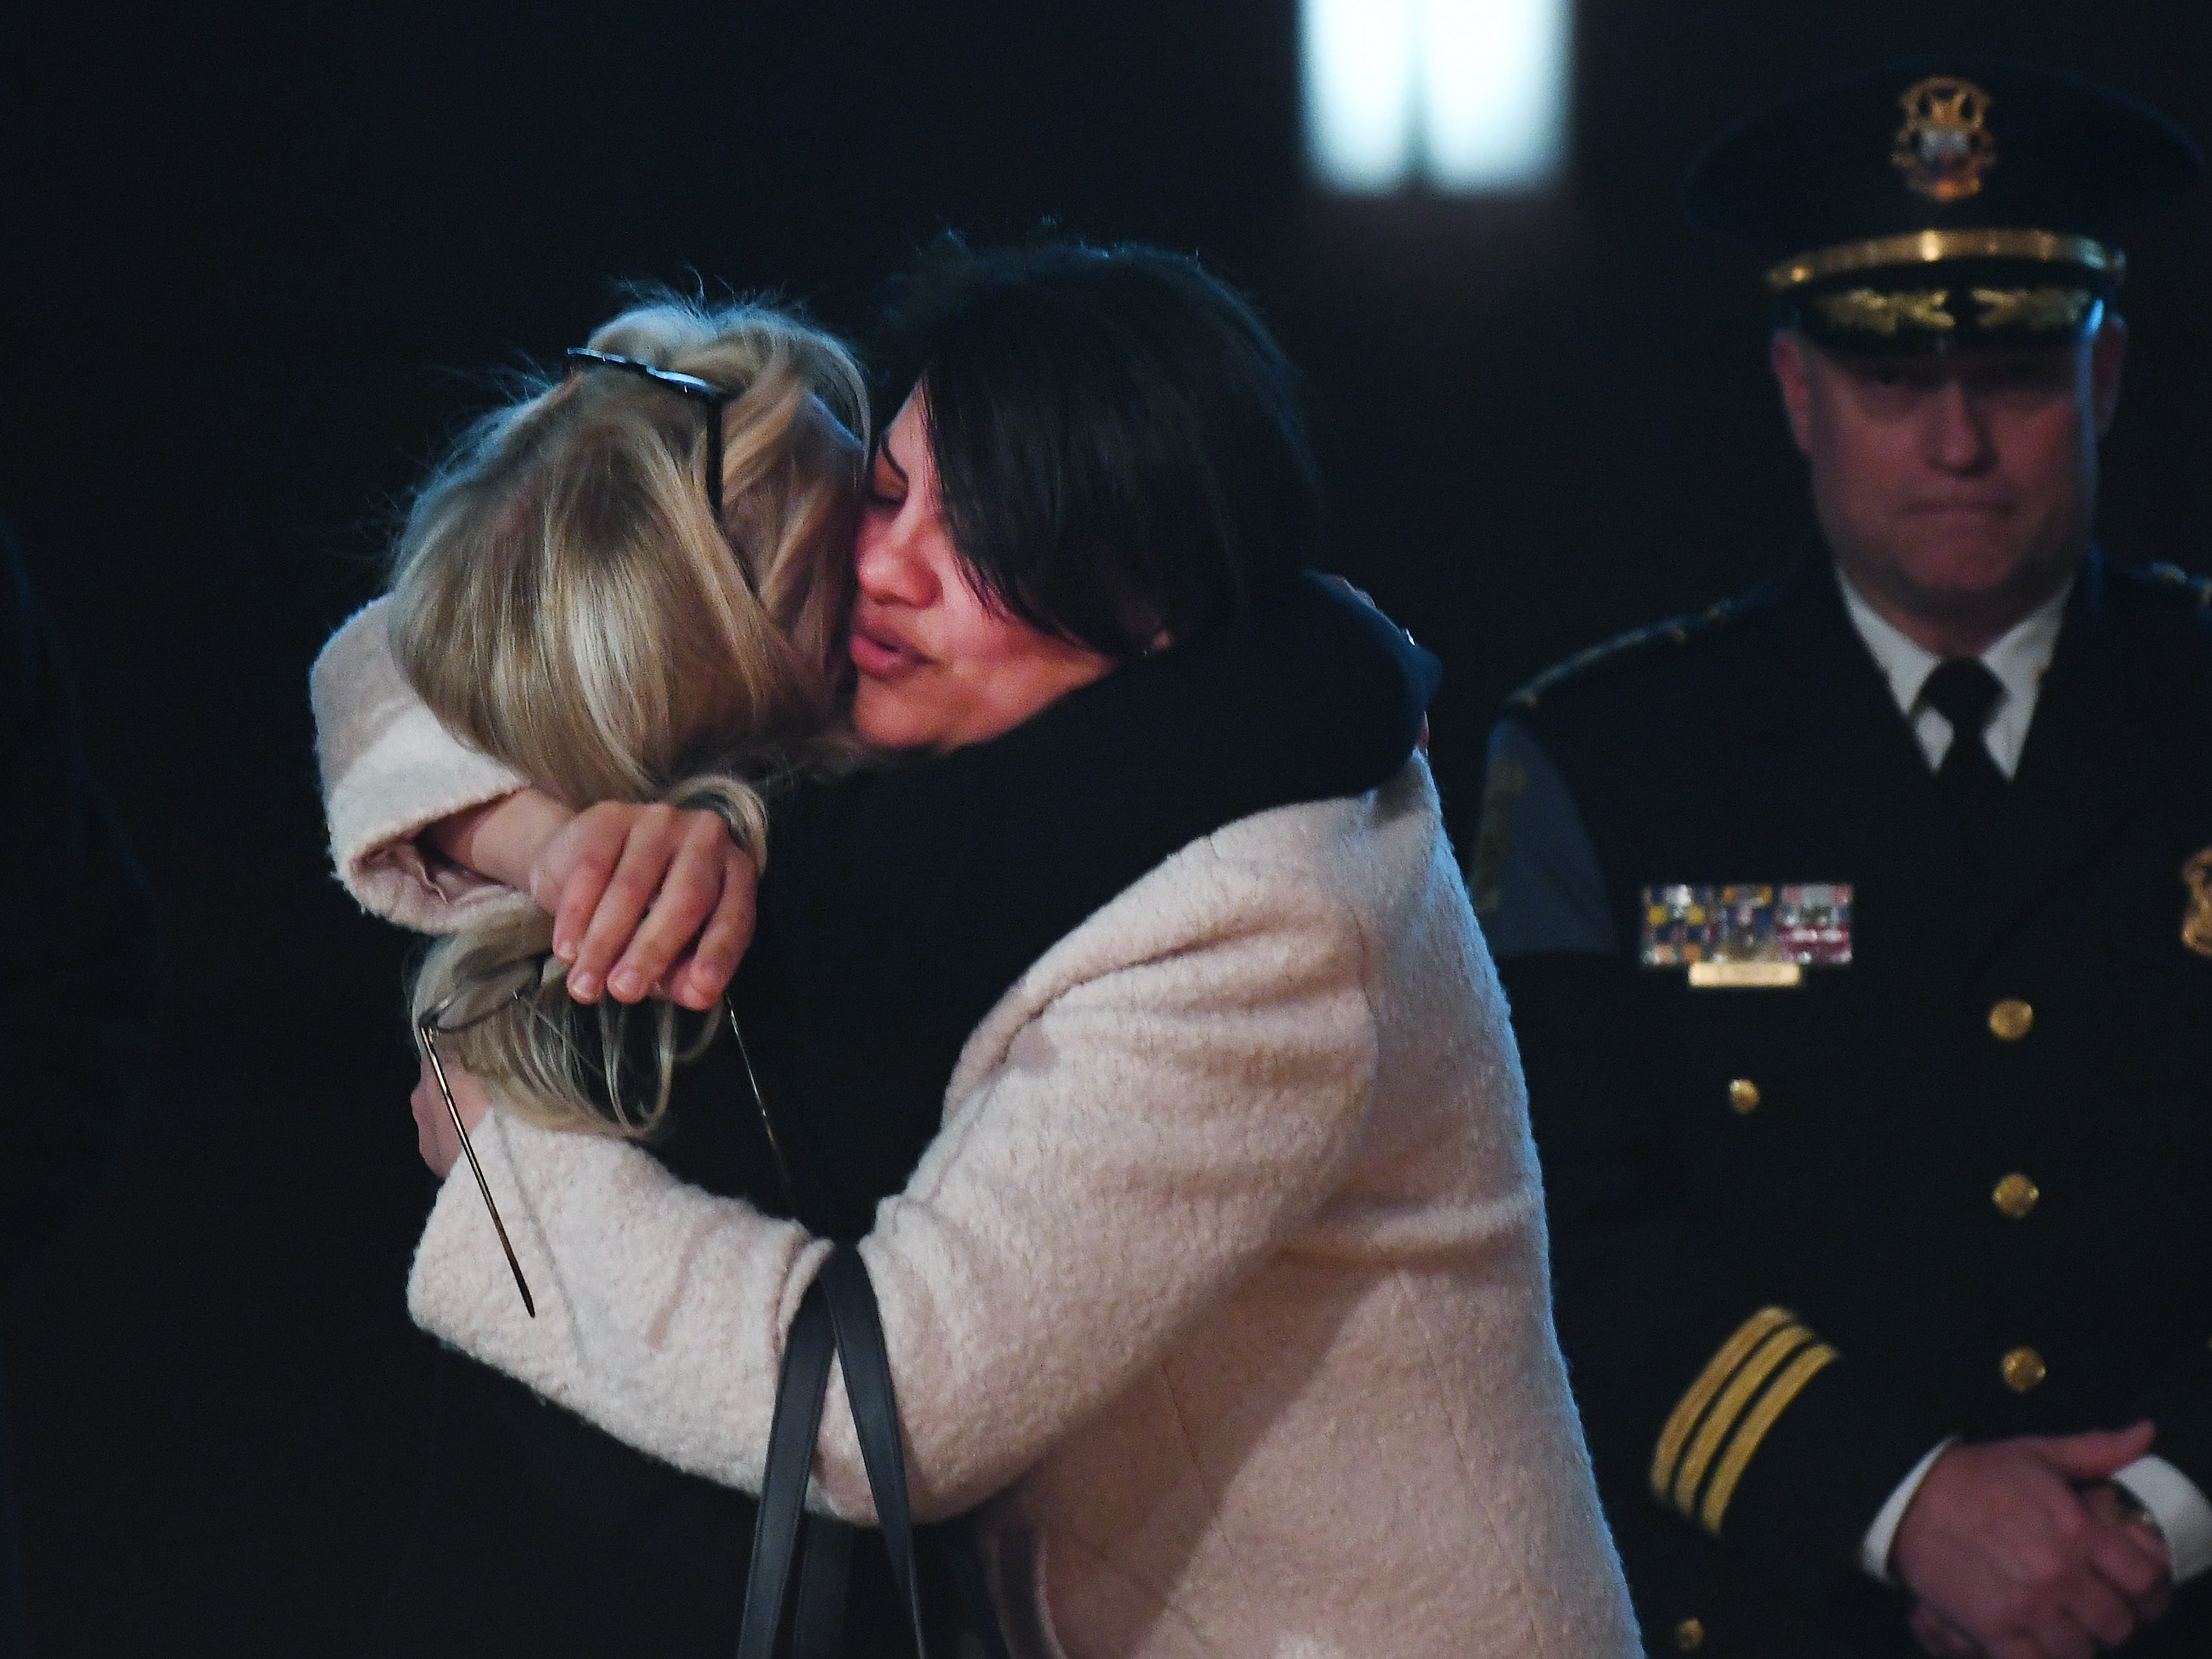 Reps. Debbie Dingell, left, and Rashida Tlaib embrace during the public viewing of the casket of retired Rep. John D. Dingell.